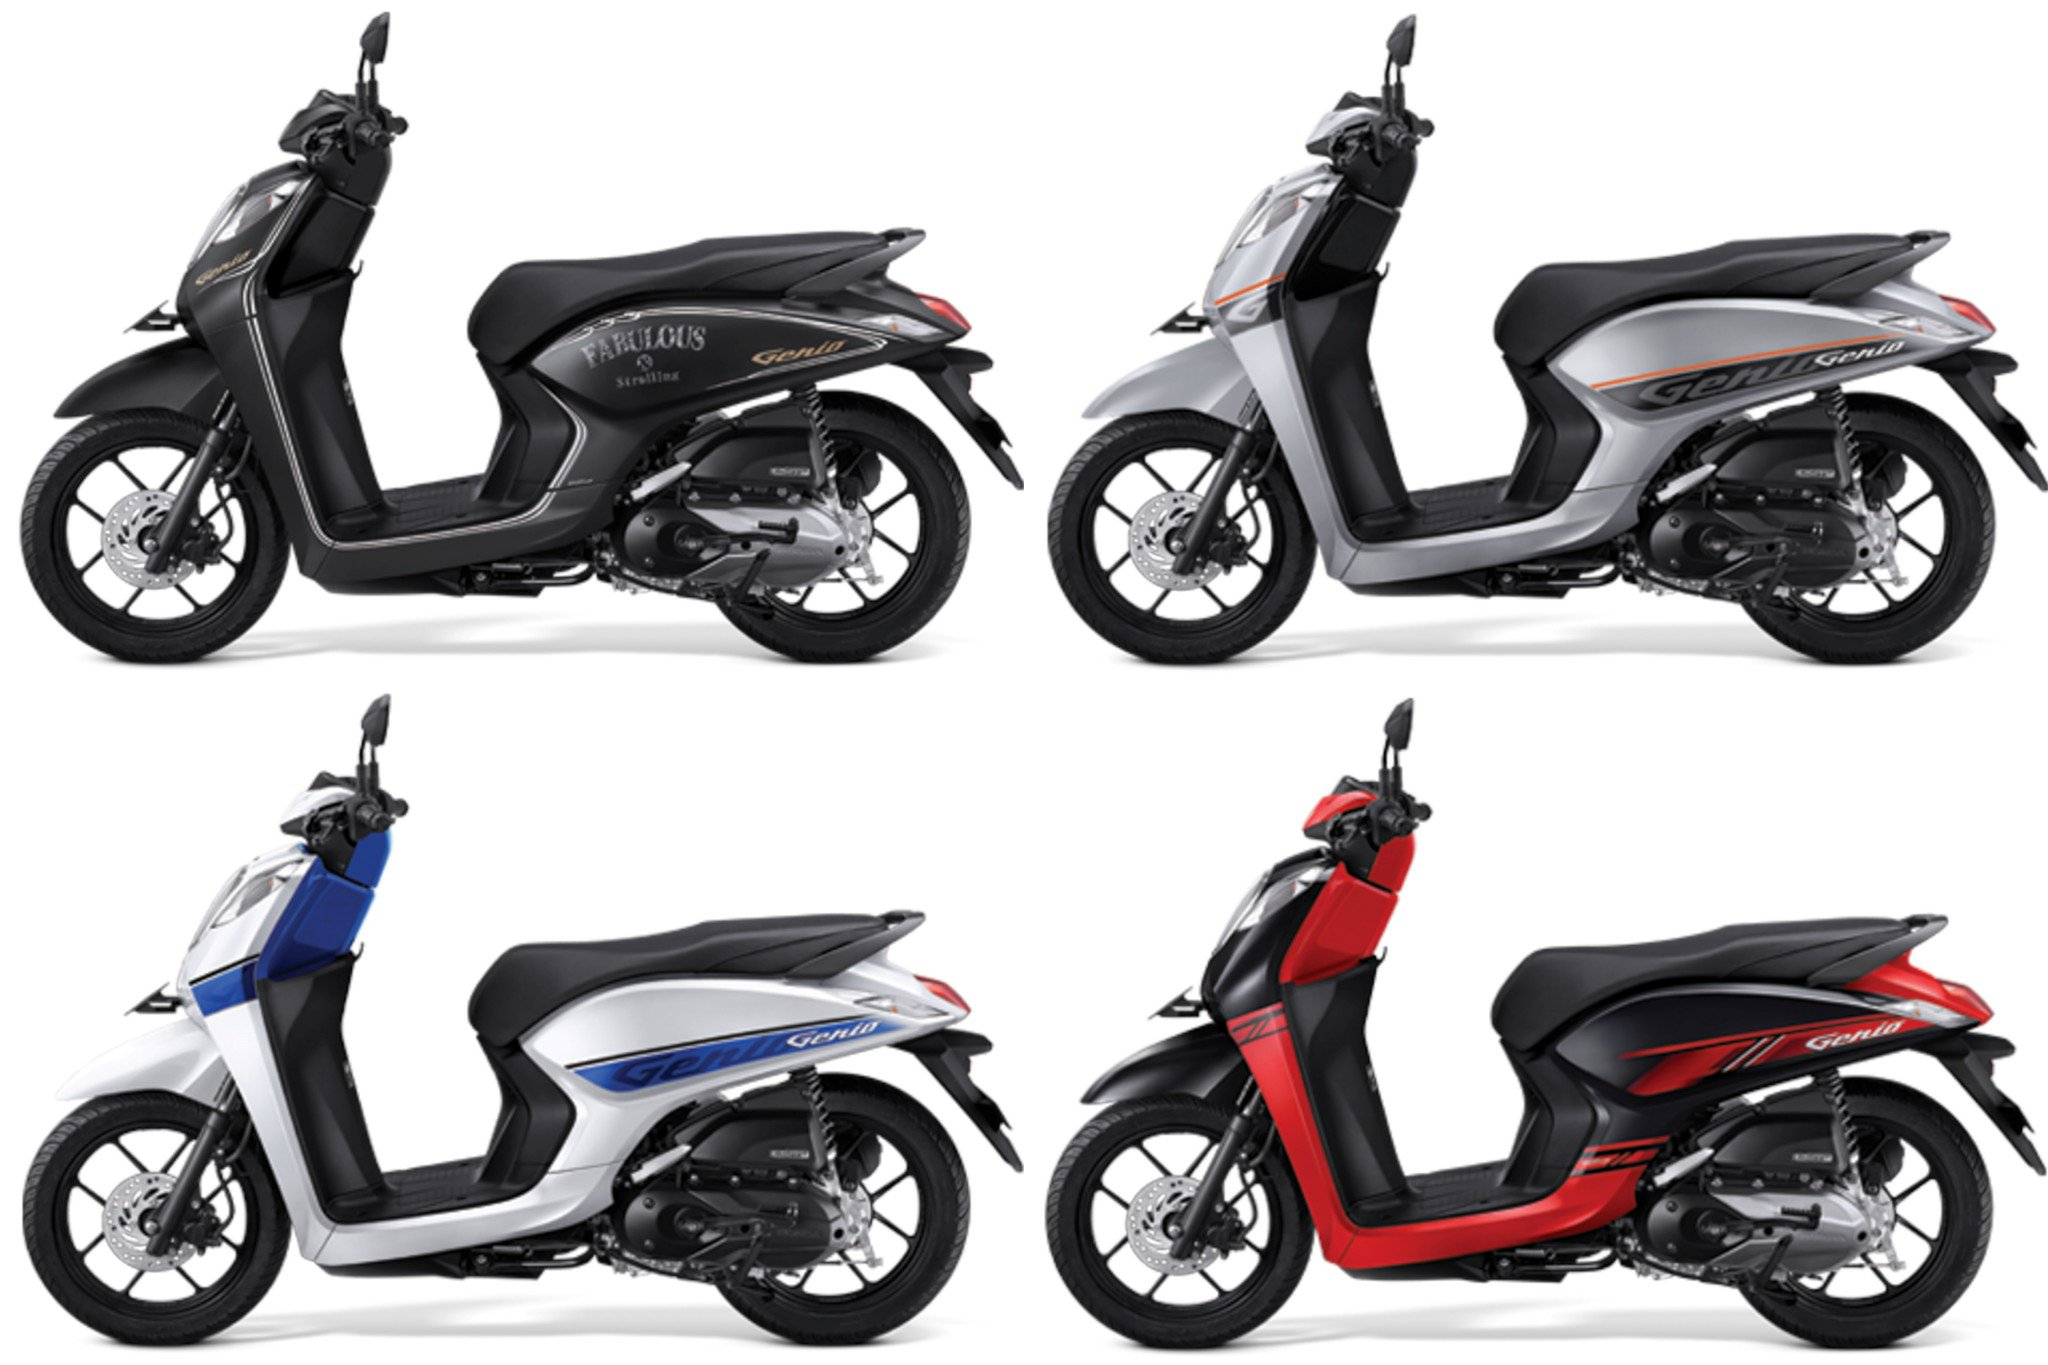 Honda Genio 2019 launched in Indonesia – a very economical